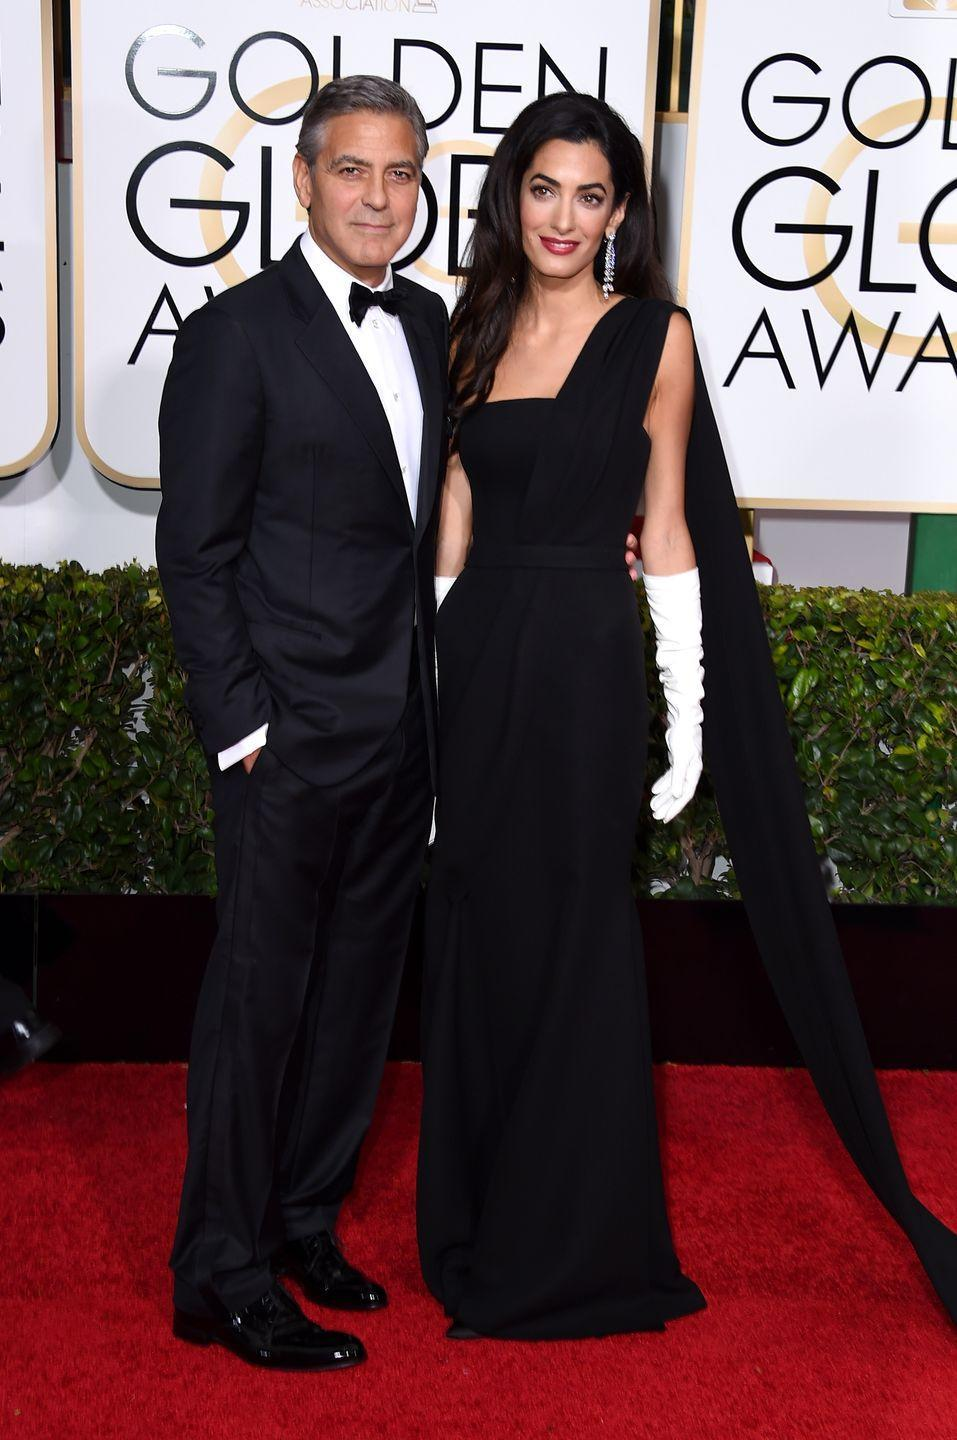 <p>George Clooney married human rights lawyer Amal Alamuddin in 2014. The couple share twins Alexander and Ella. </p>